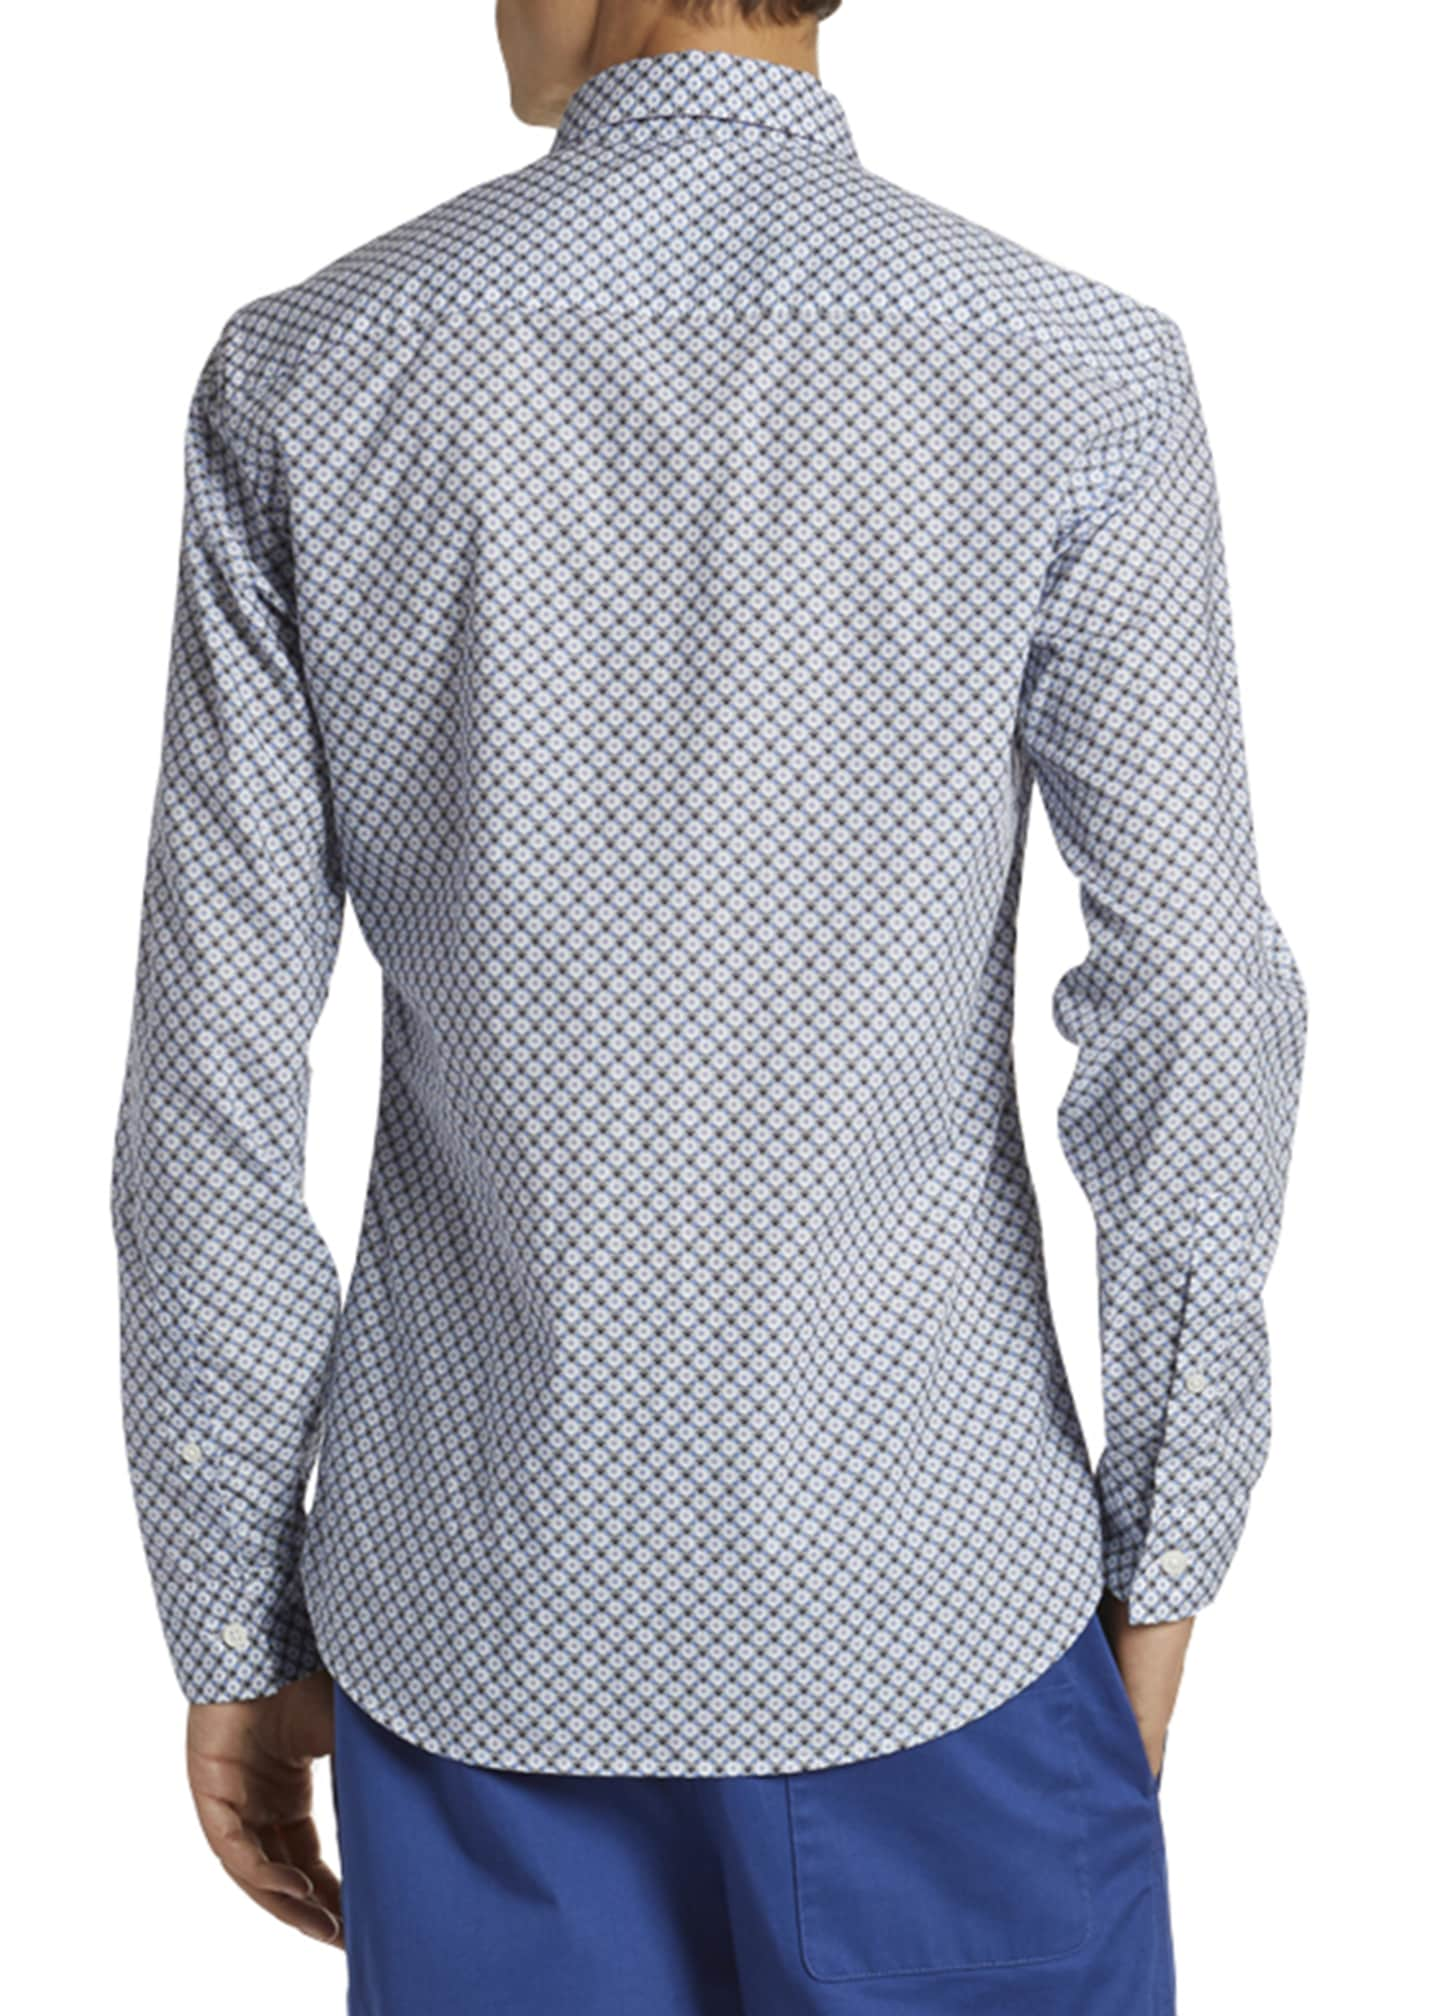 Image 2 of 2: Men's Urban Slim-Fit Sport Shirt